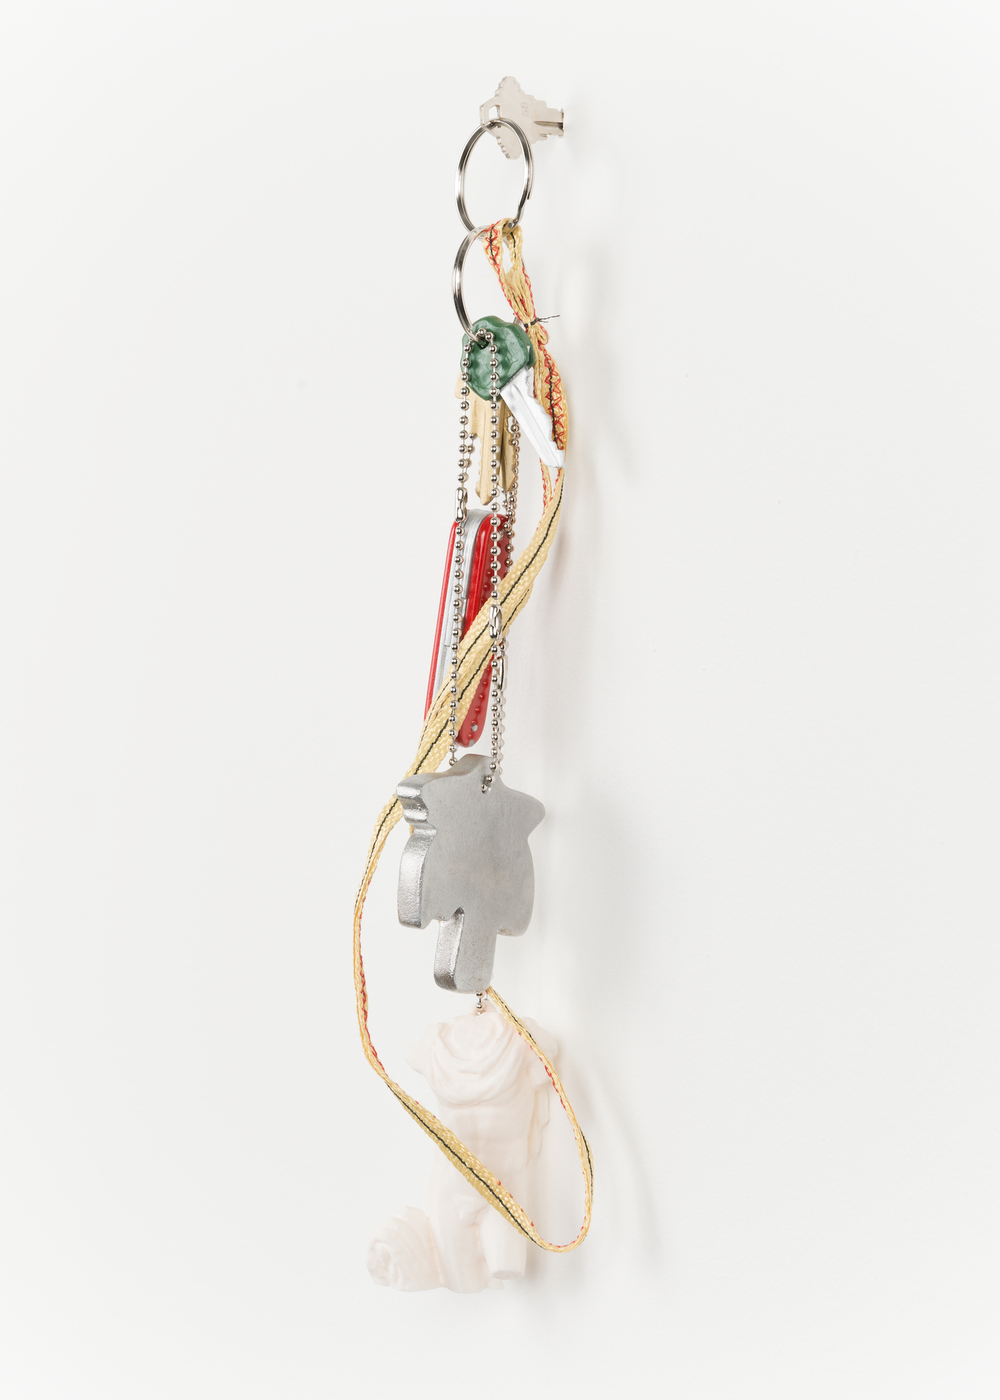 Chris Bradley  Token (Palm #2)  2013 Cast aluminum, wood, PLA, kevlar, key rings, chain 15h x 4w x 3d in CB055